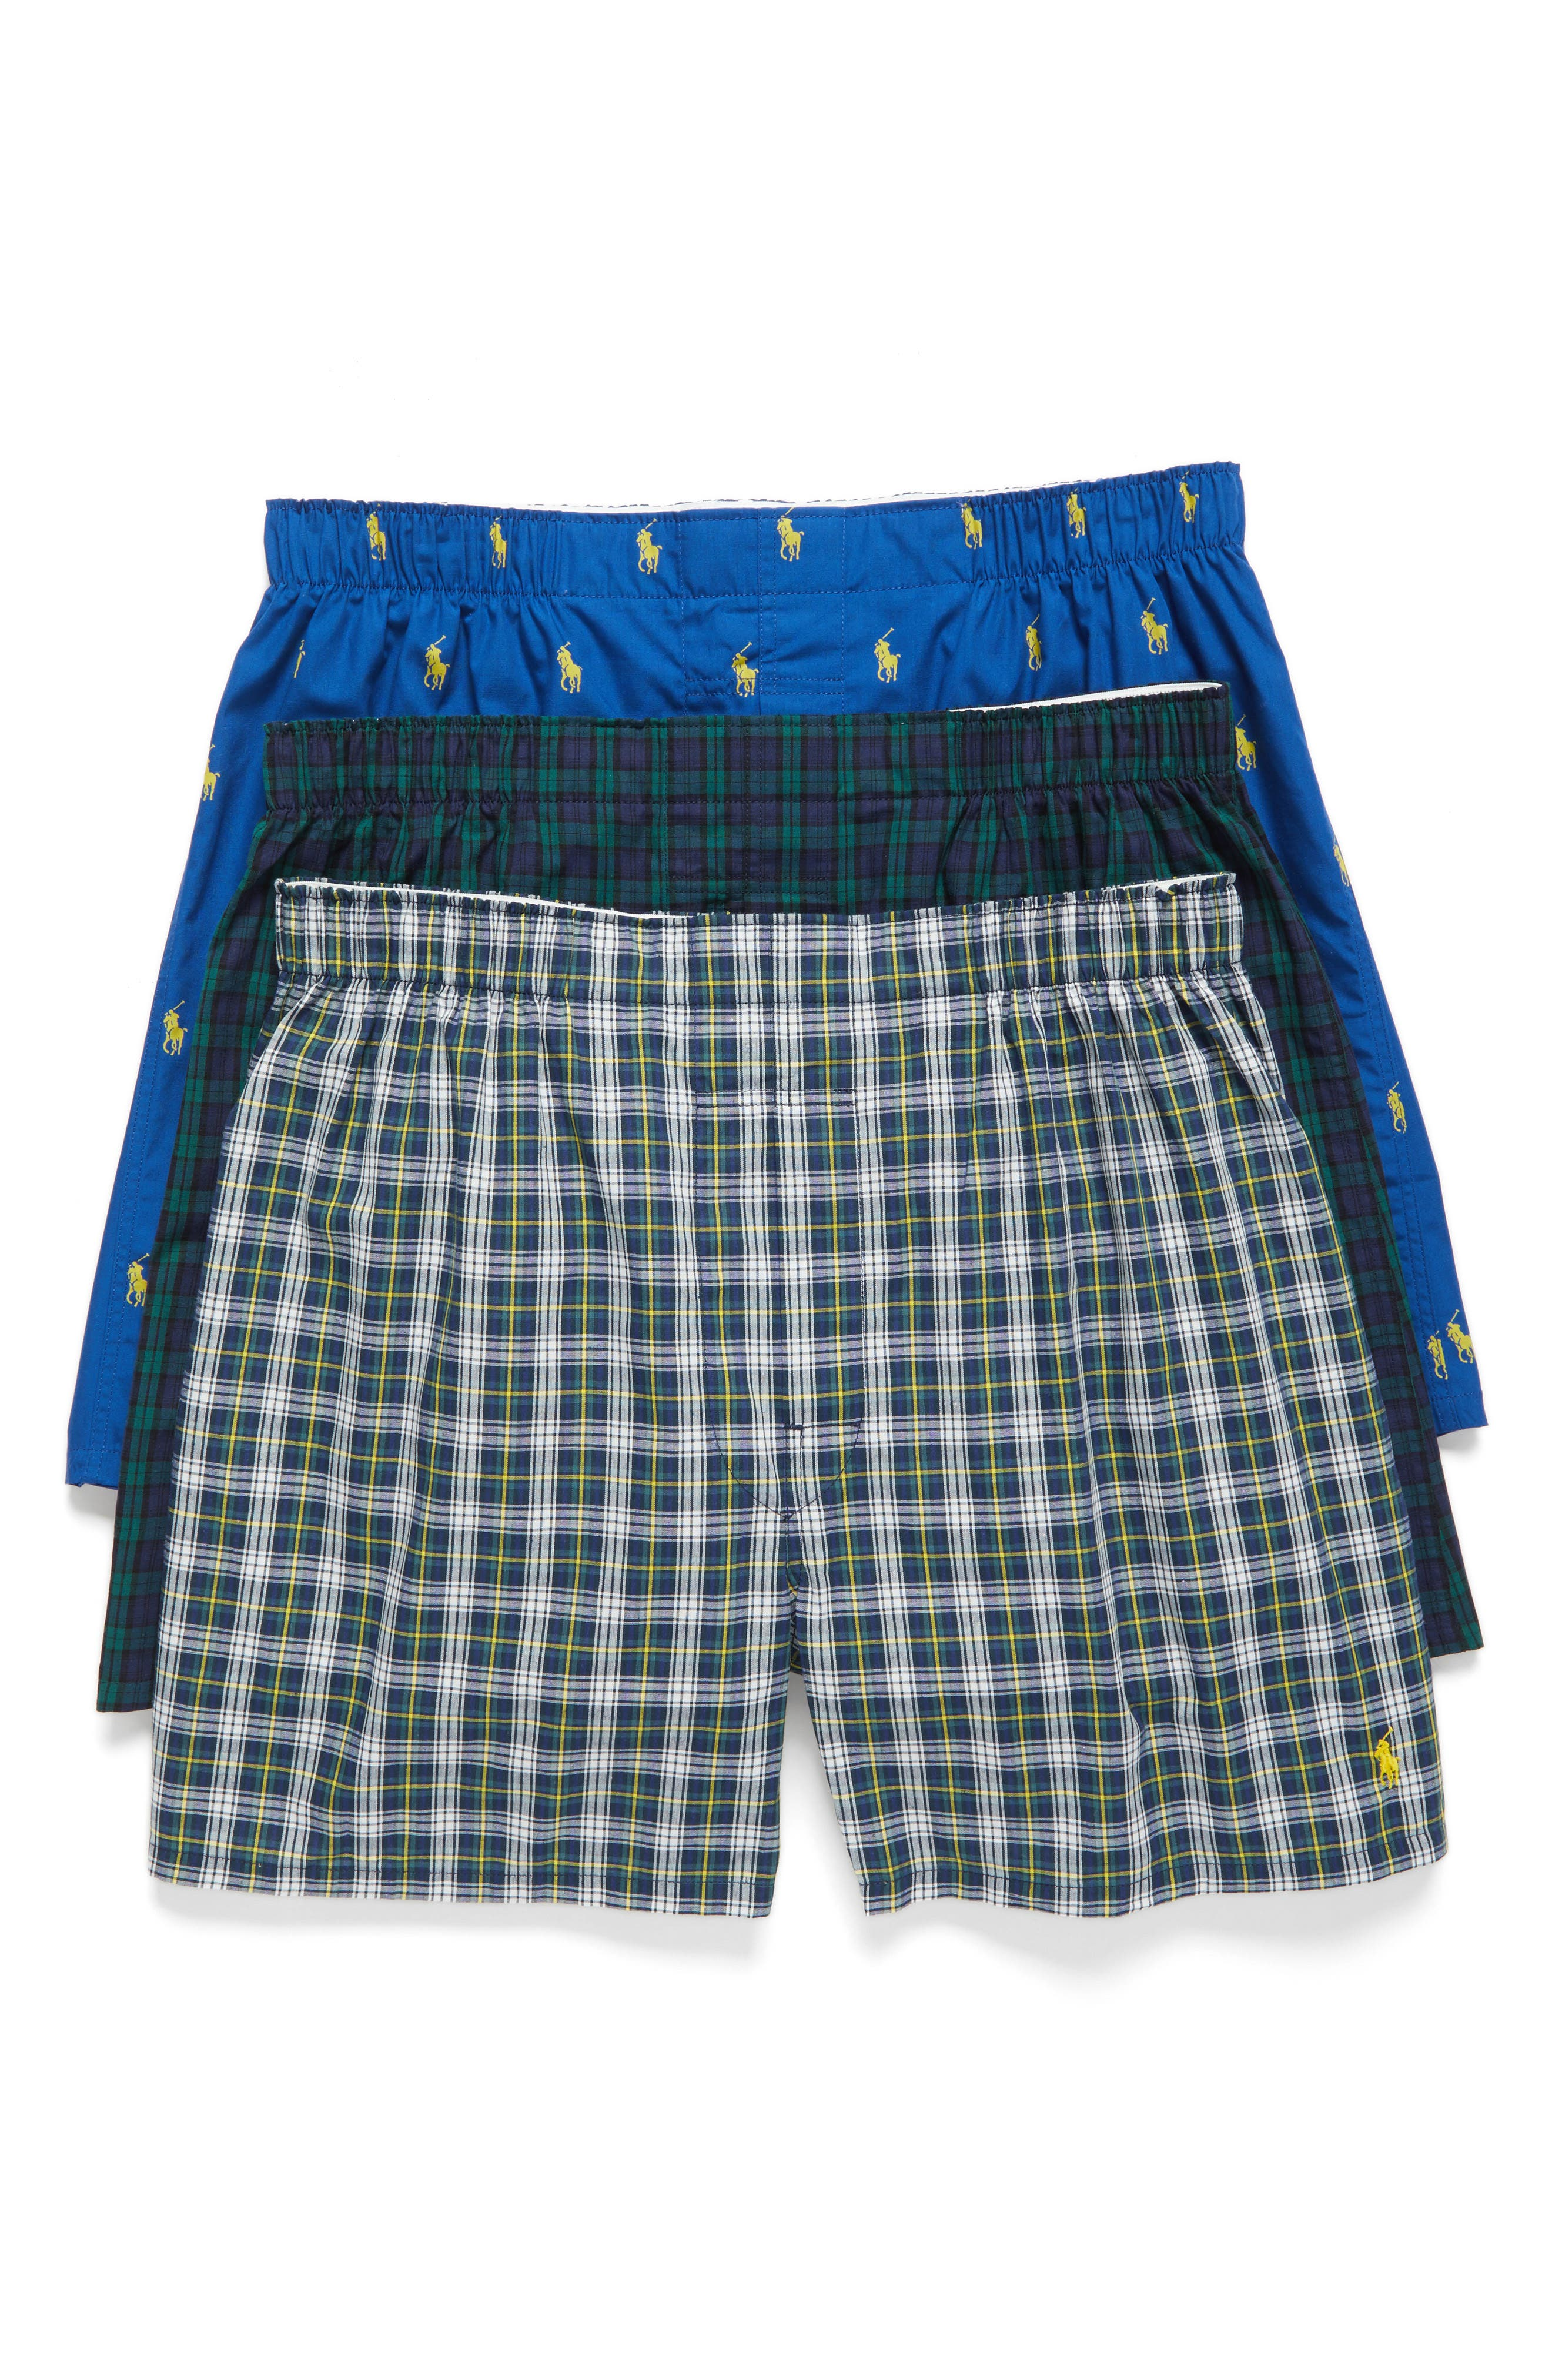 Assorted 3-Pack Woven Cotton Boxers,                         Main,                         color, Blue/ Green Plaid/ Navy Plaid